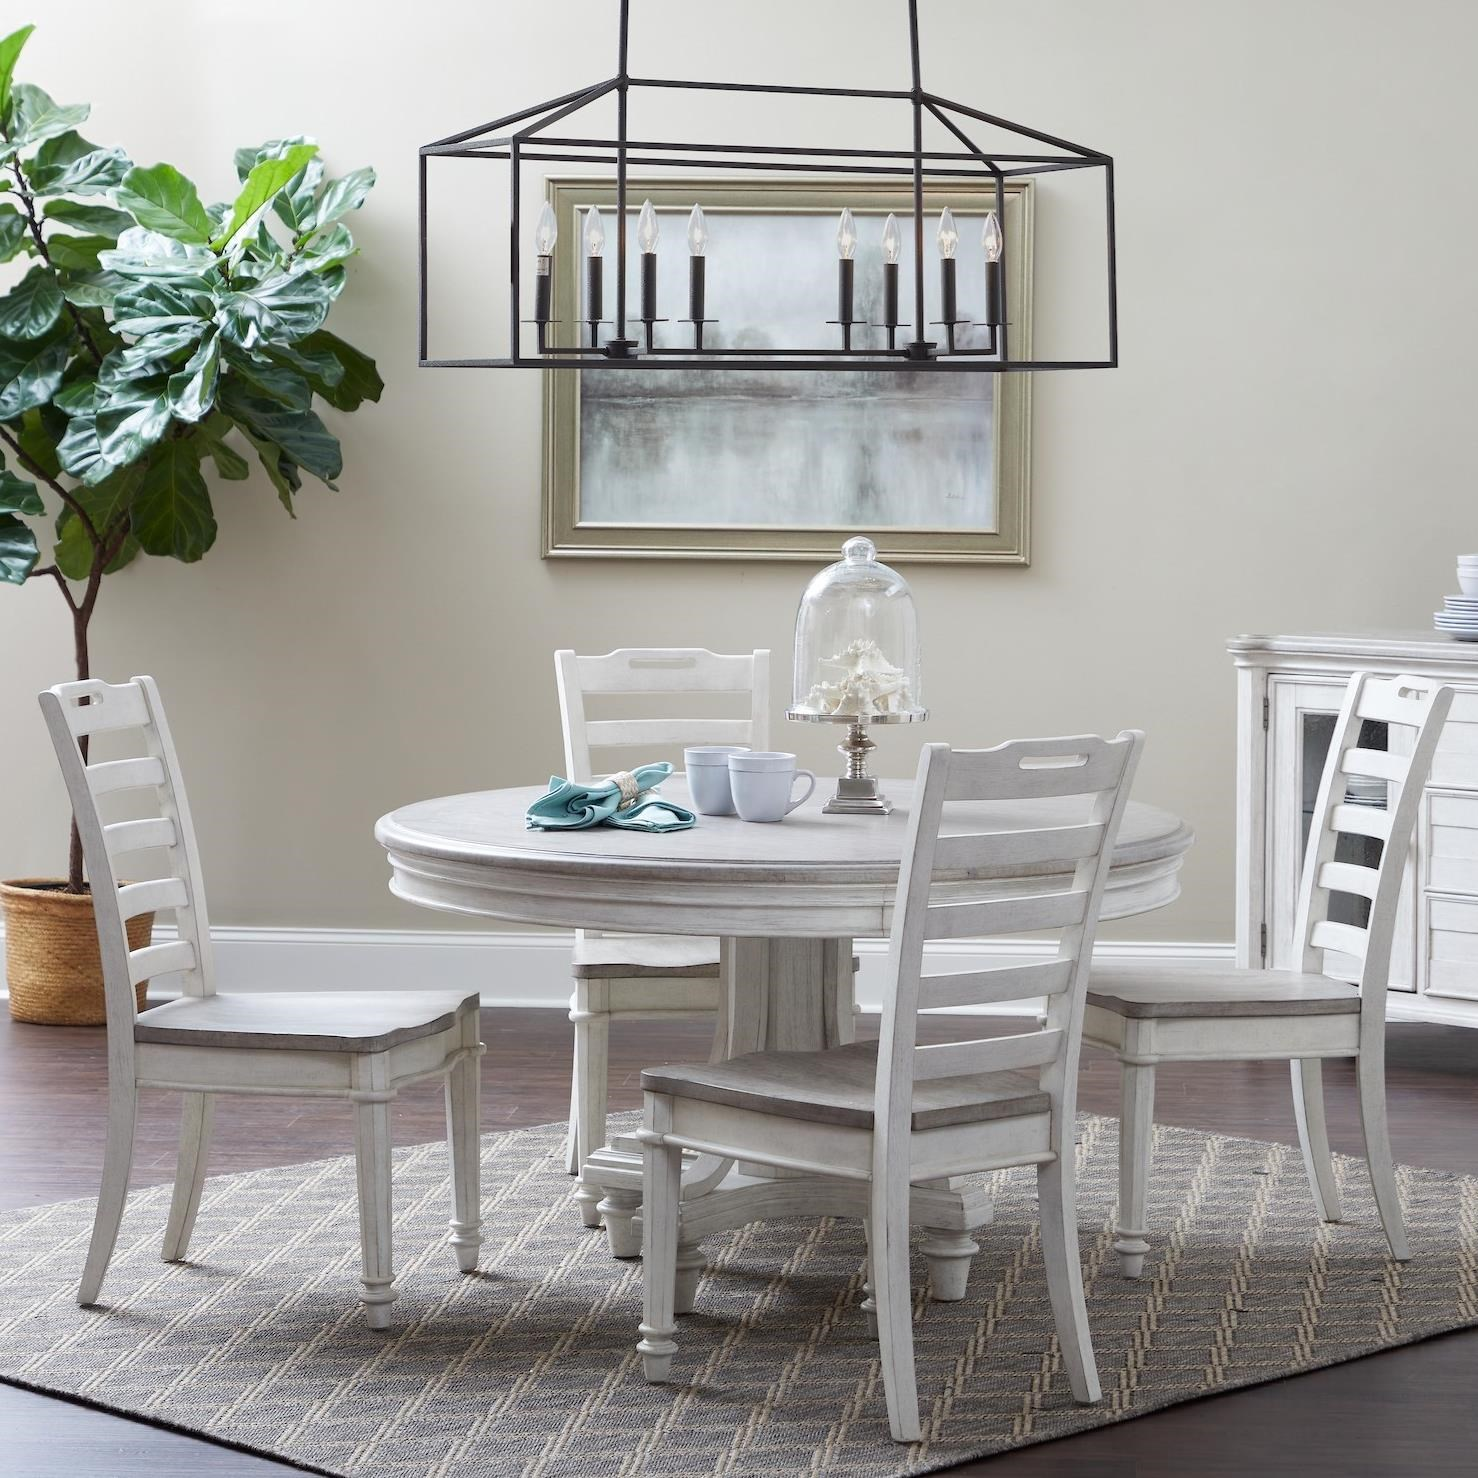 Maribelle 5-Piece Dining Set by Klaussner International at Northeast Factory Direct